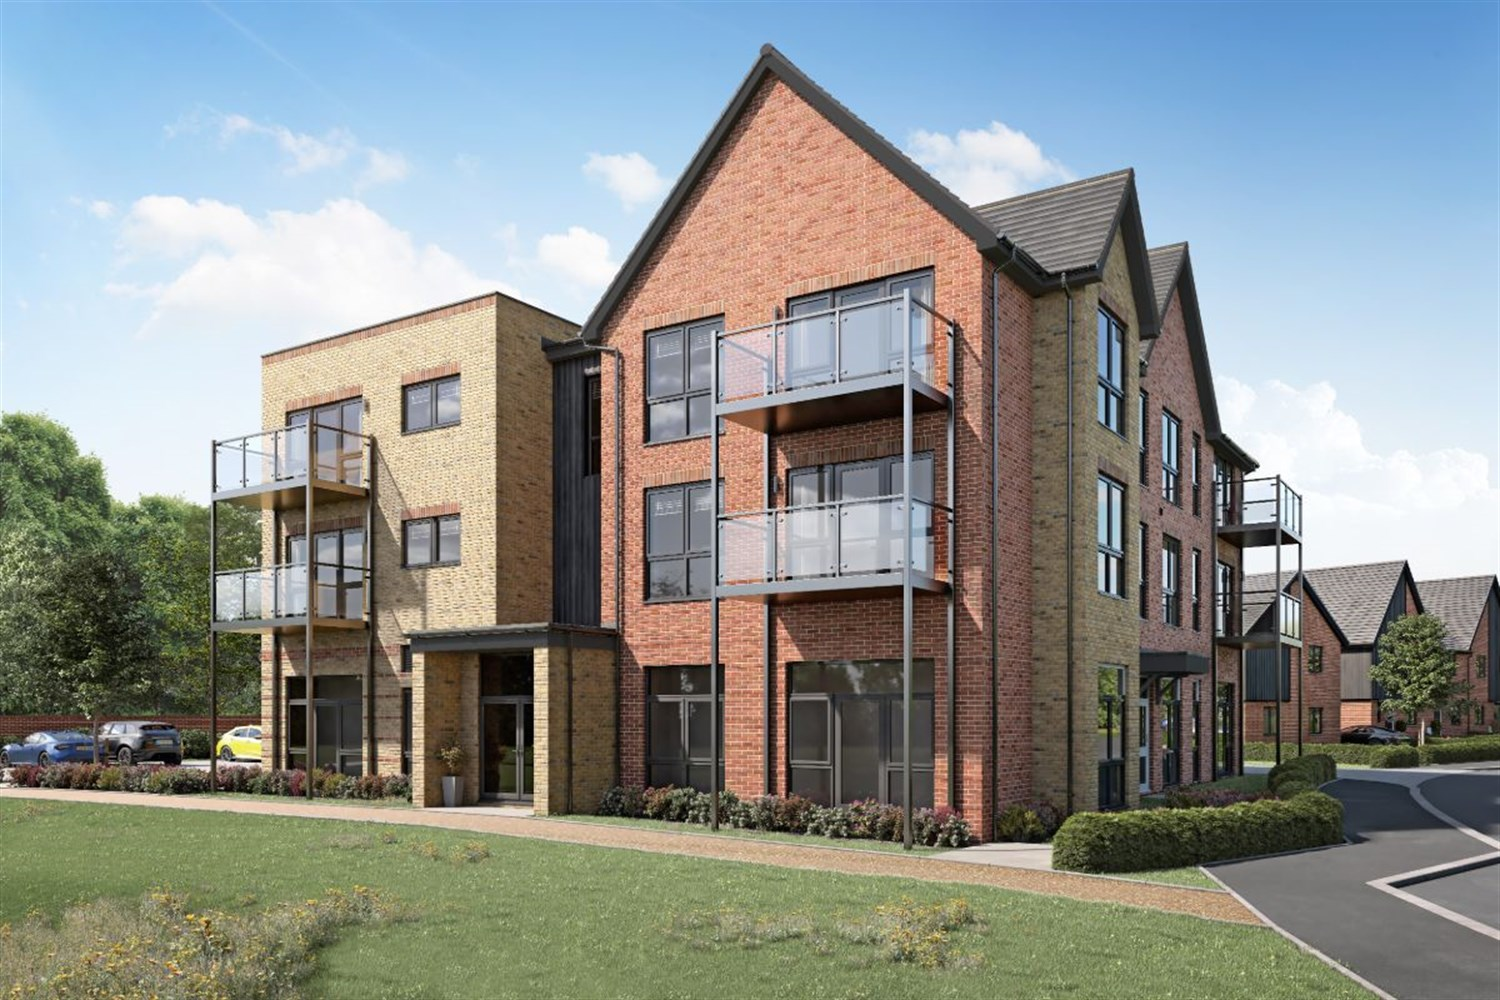 The Stables at Waterman's Gate - 1 bed apartment, Arborfield Green, RG2 9LN